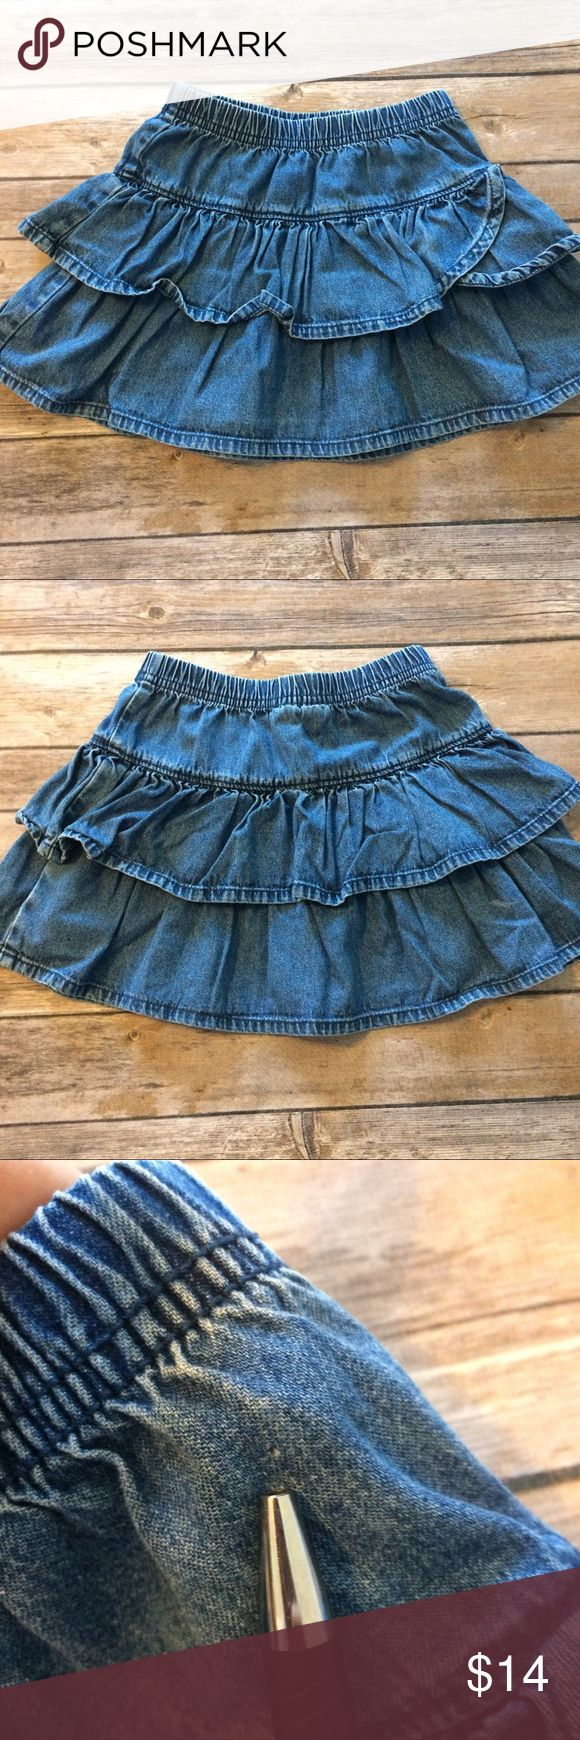 Hanna Andersson tiered ruffle denim skirt size 100 Great basic wardrobe staple. Guc because not first owners and small pin hole on front (see photo). Elastic waist and tiered ruffles. Size 100 which is approx size 4 or fit for age 3 to 5 years. 100% cotton. Smoke free dog friendly home. Always a bundle discount in my closet. Hanna Andersson Bottoms Skirts